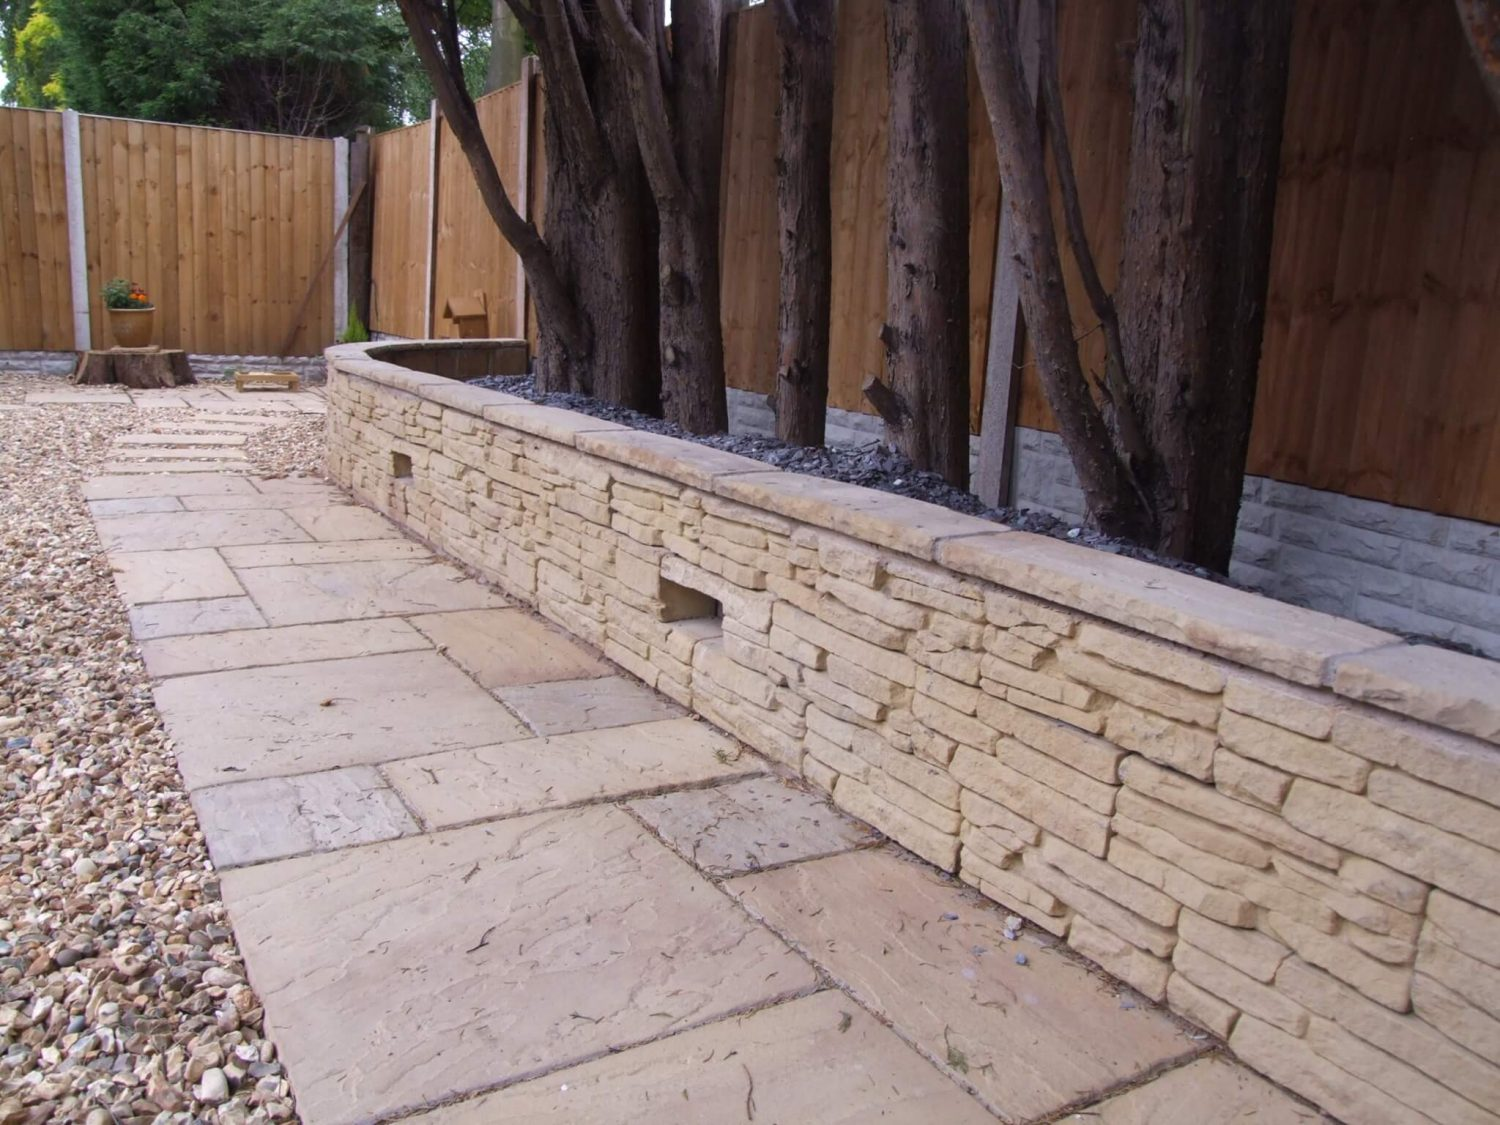 which 15 retaining wall blocks design on block everloc - Retaining Wall Blocks Design